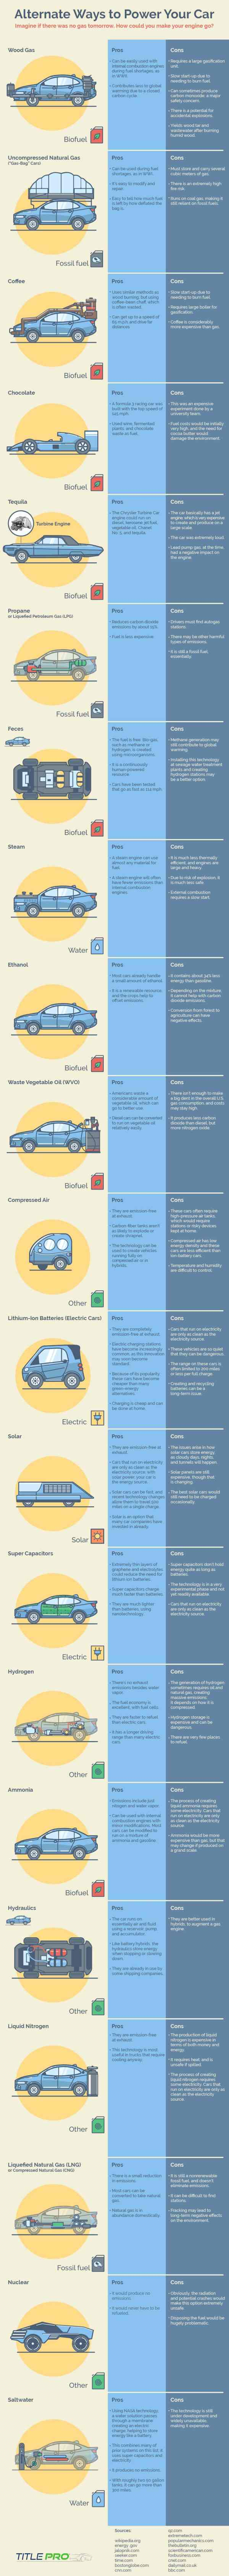 Alternate Ways to Power Your Car Infographic